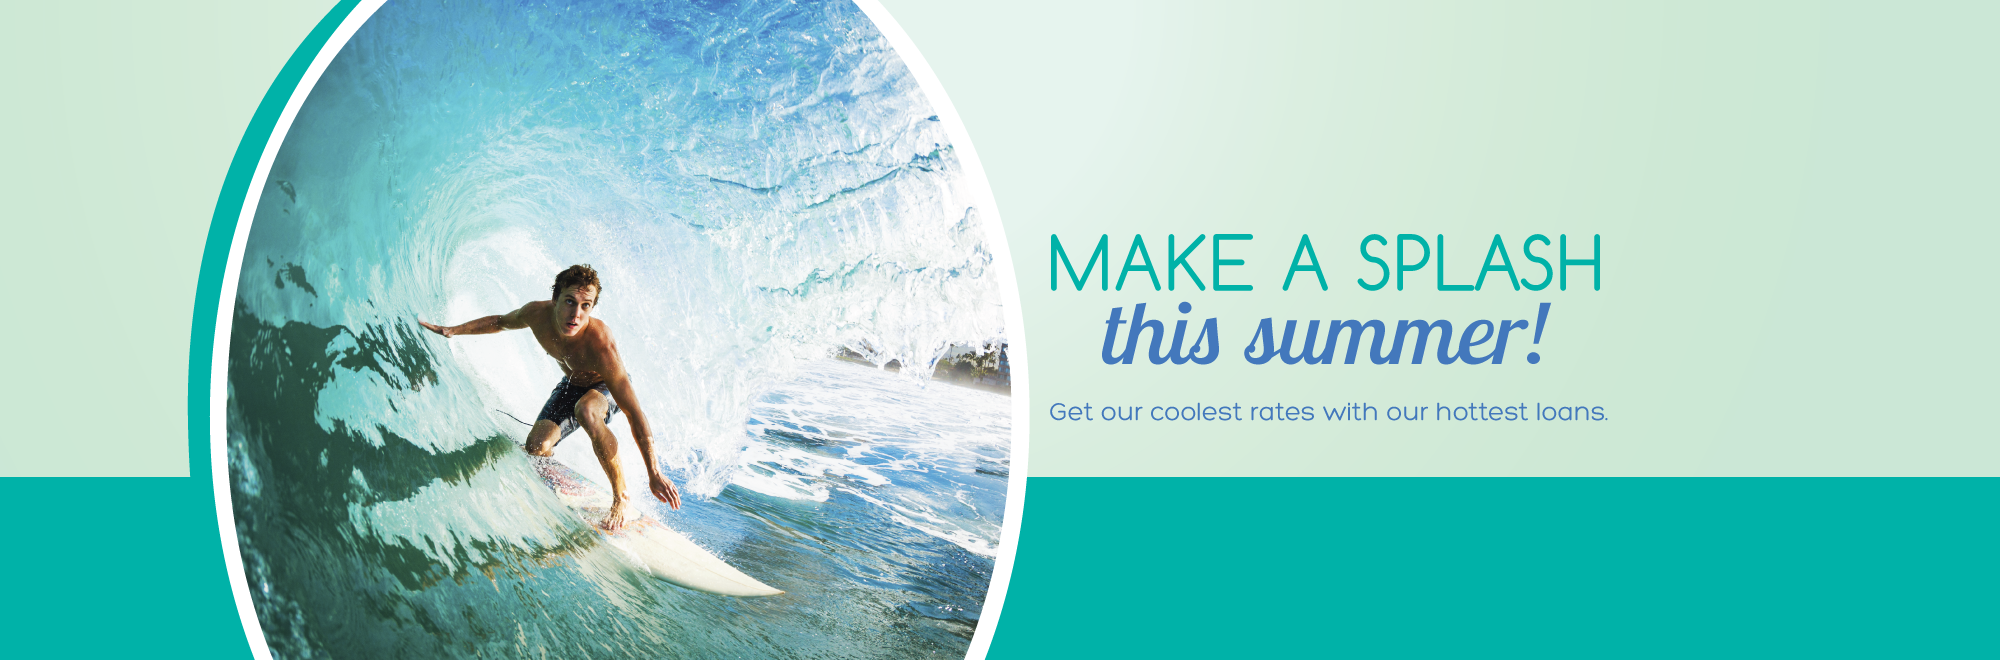 Make a Splash this summer! Get our coolest rates with our hottest loans